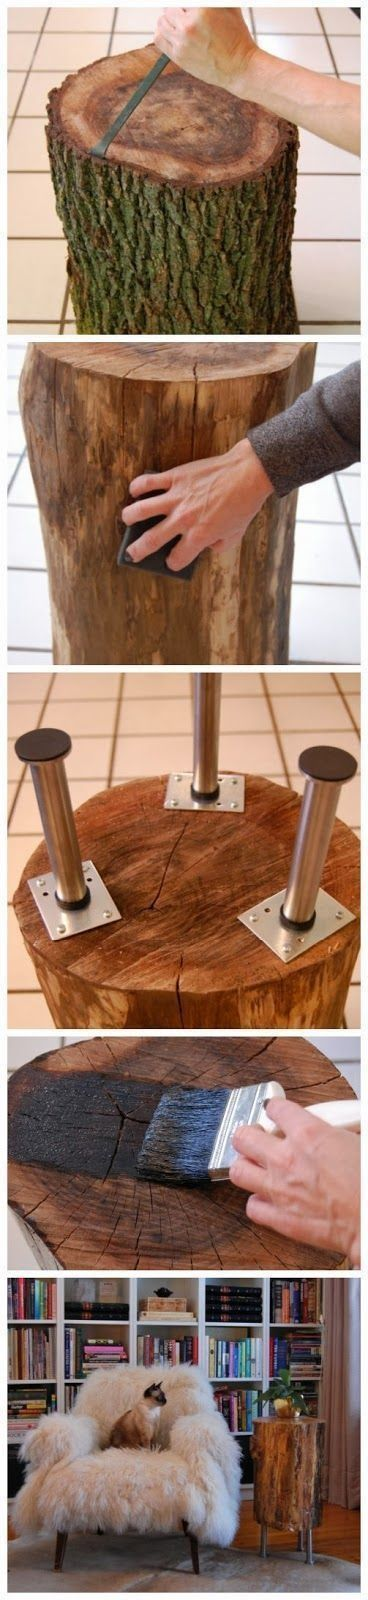 Tree Stump Table ~ tutorial here:http://www.theartofdoingstuff.com/stumped-how-to-make-a-tree-stump-table/